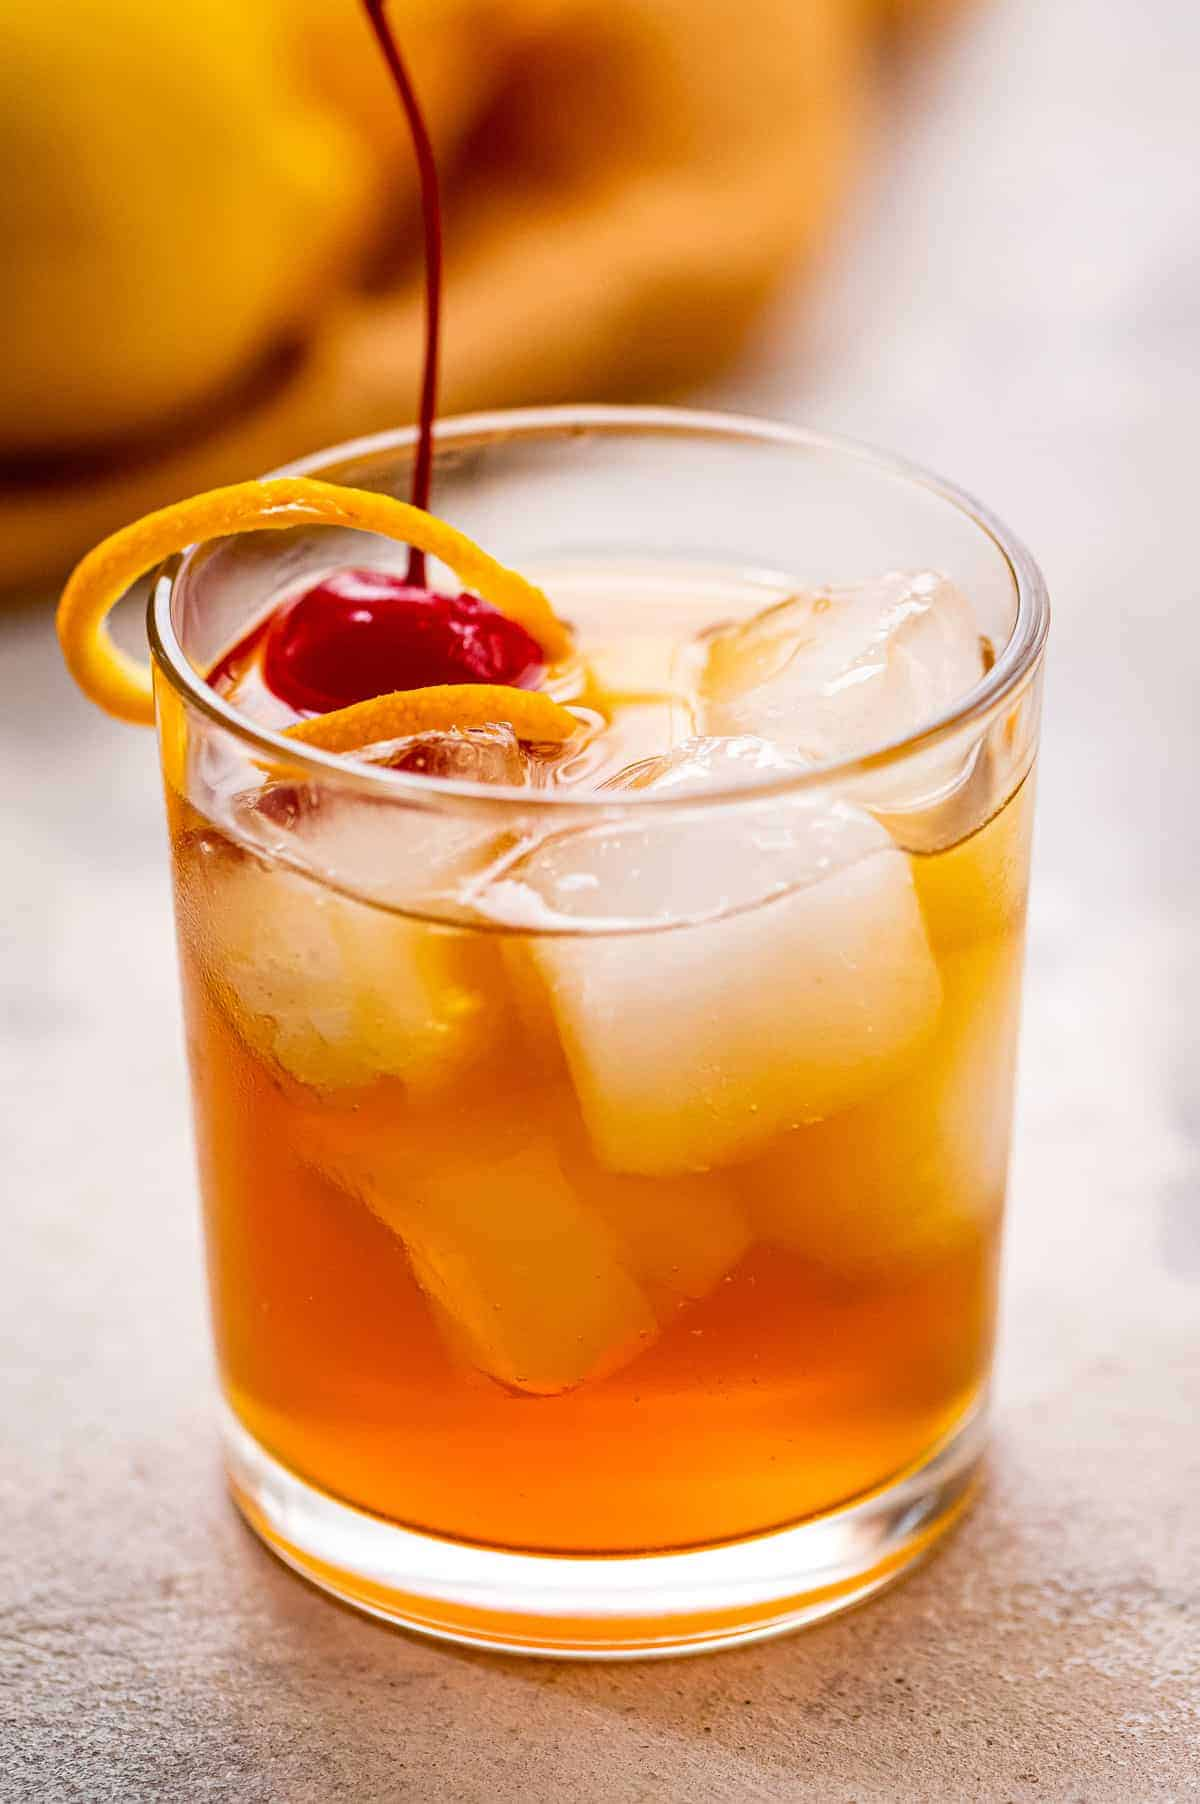 Glass with whiskey sour garnished with orange peel and maraschino cherry